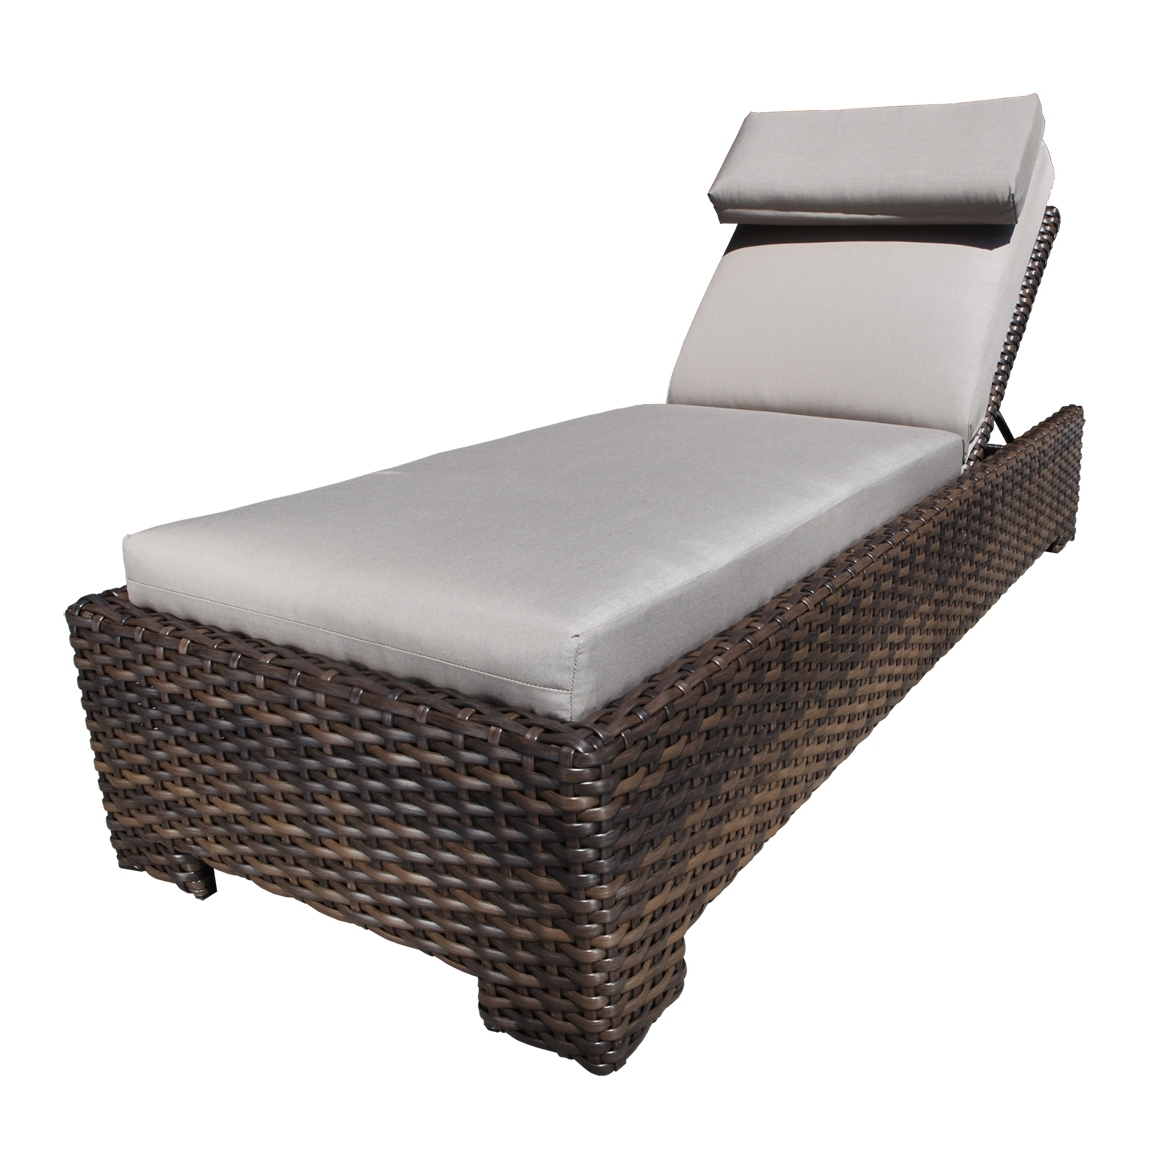 2019 Popular Chaise Lounge Chairs In Canada - Patio Loungers Canada